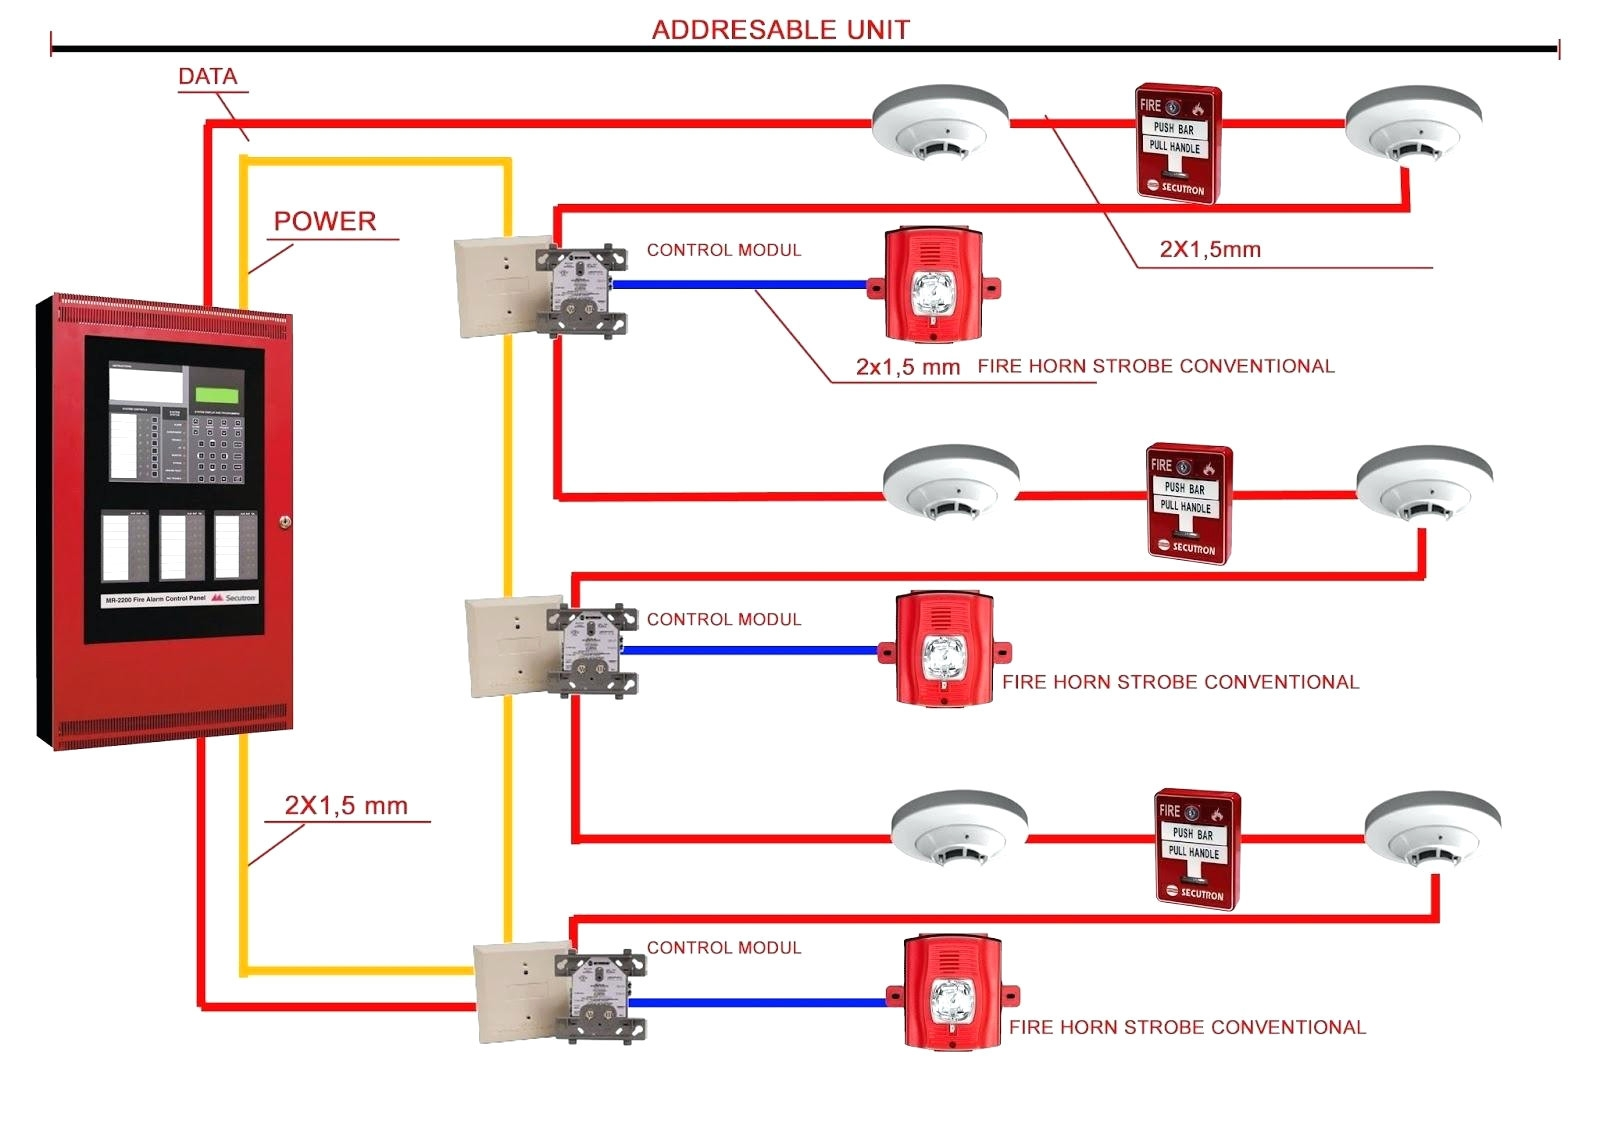 fire alarm pull station wiring diagram free wiring diagram. Black Bedroom Furniture Sets. Home Design Ideas